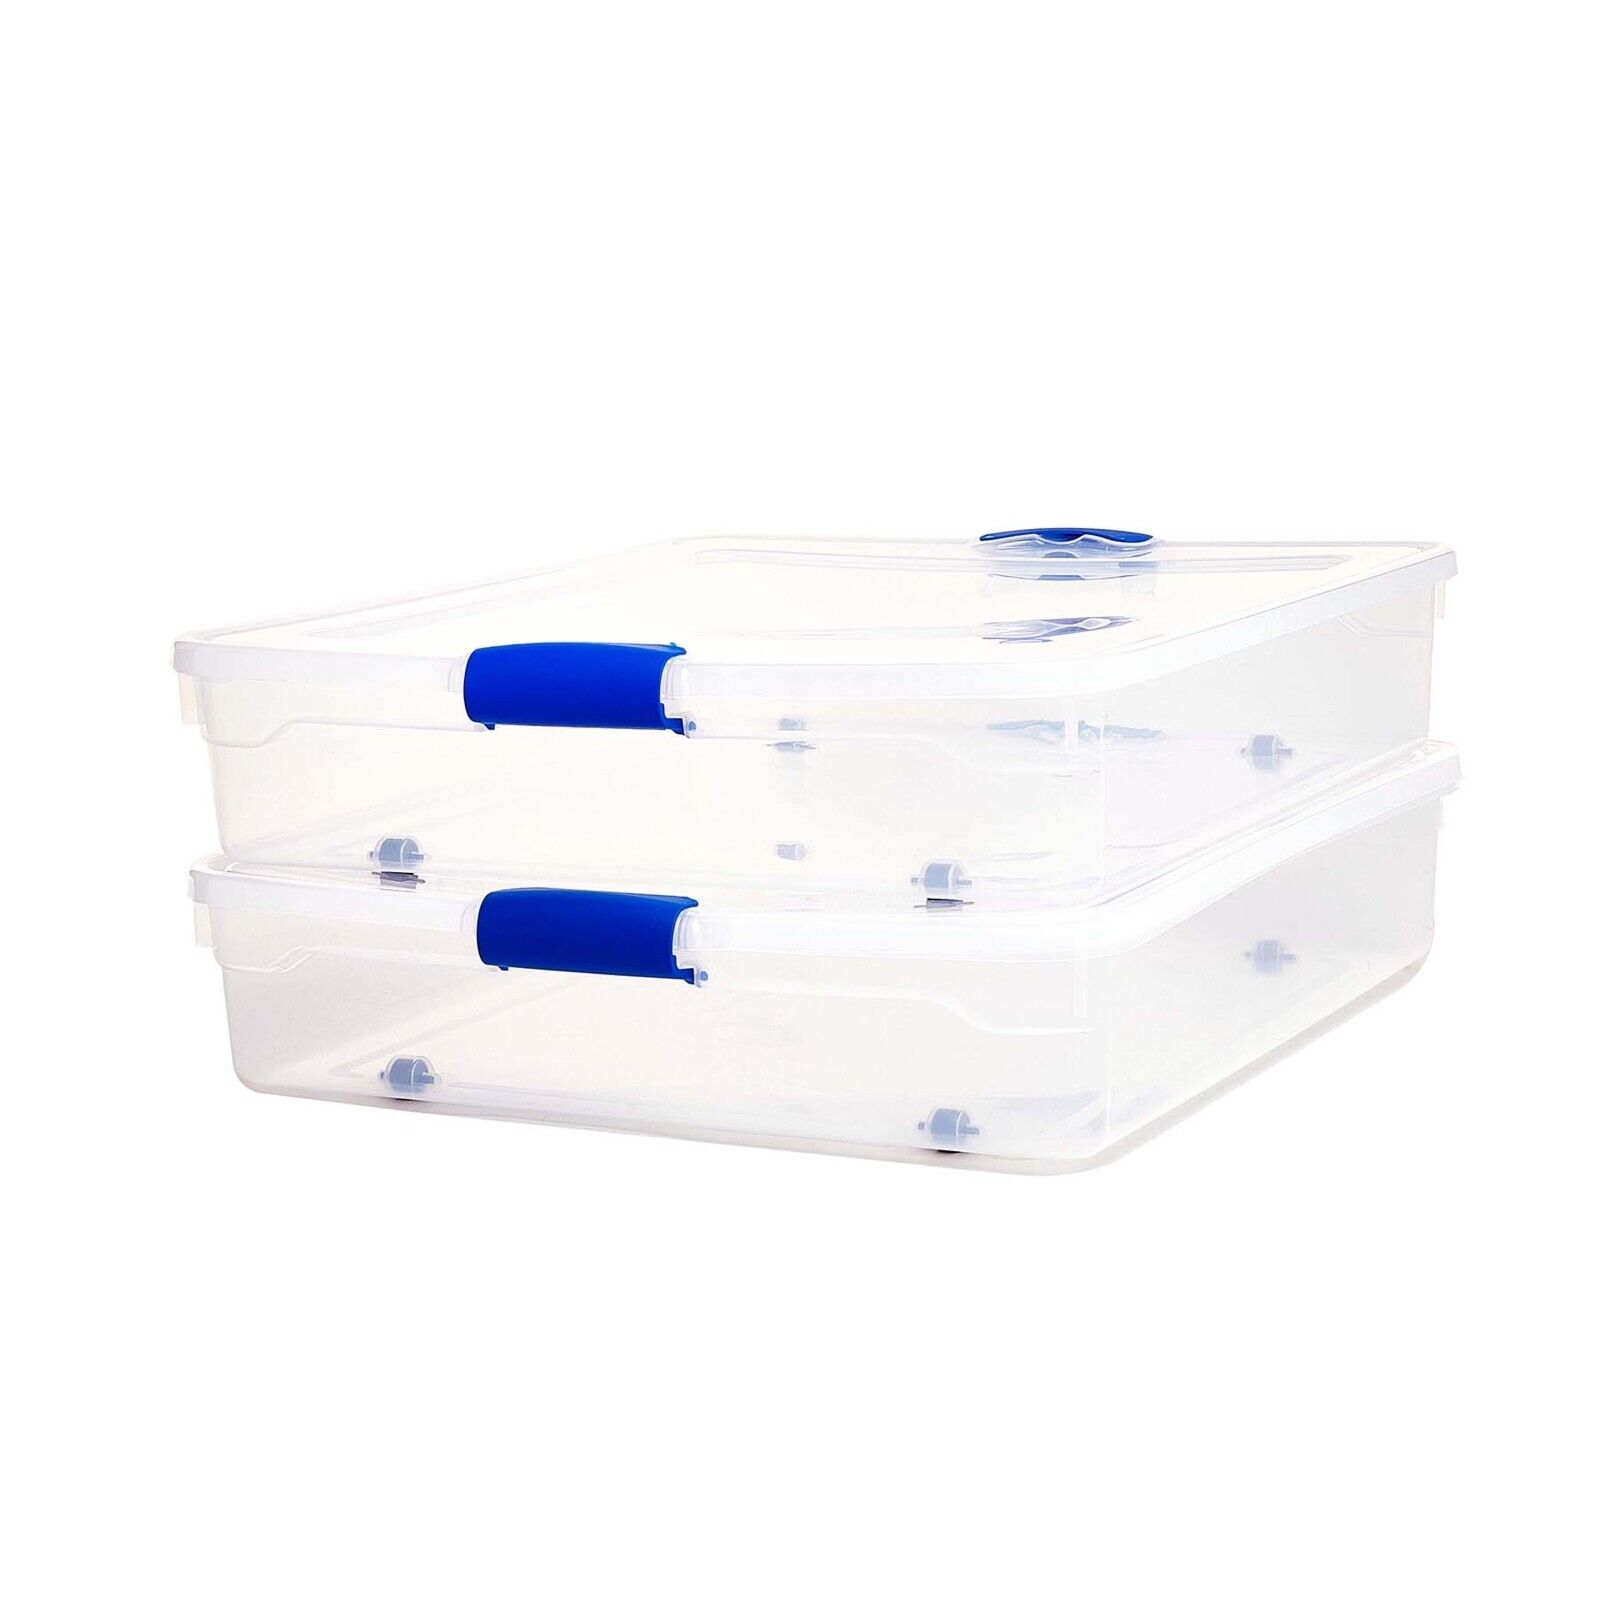 Homz 56-Qt Full/Queen Under Bed Clear Storage Boxes, Set of